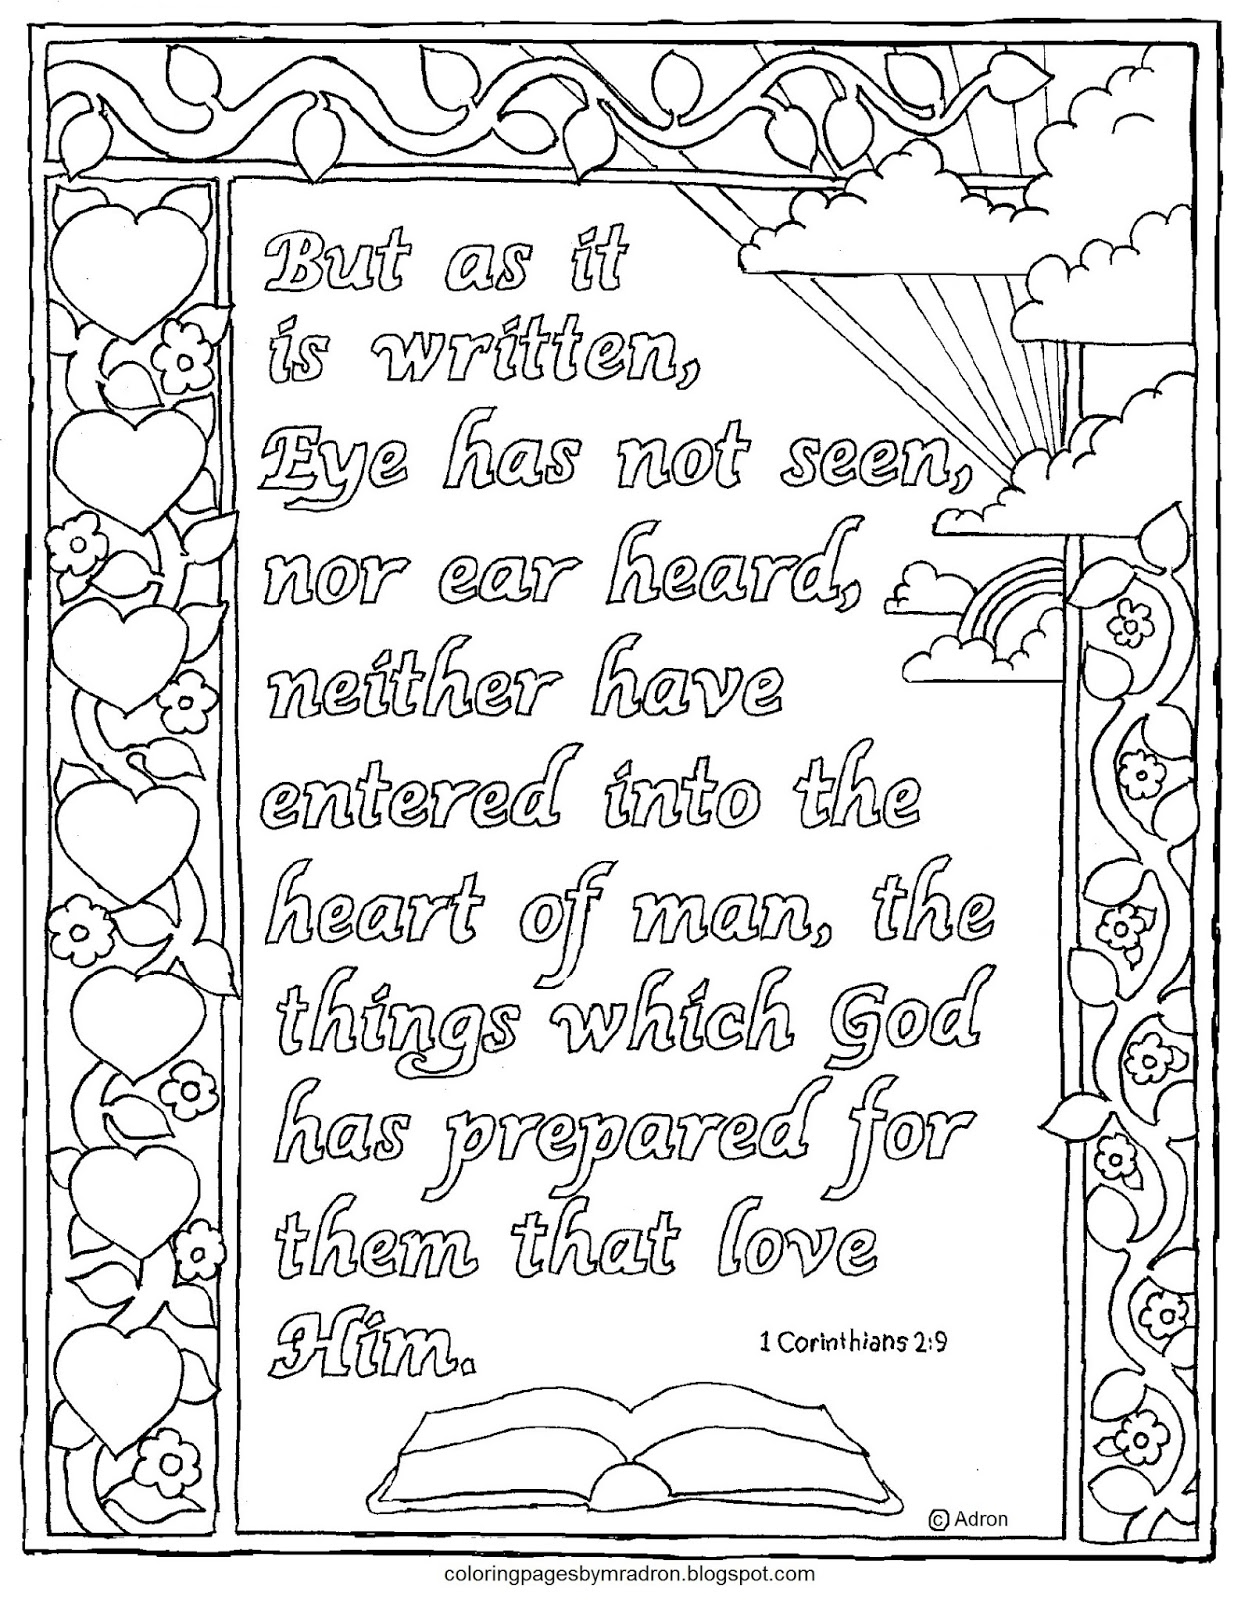 Coloring Pages for Kids by Mr Adron 1 Corinthians 29 Printable